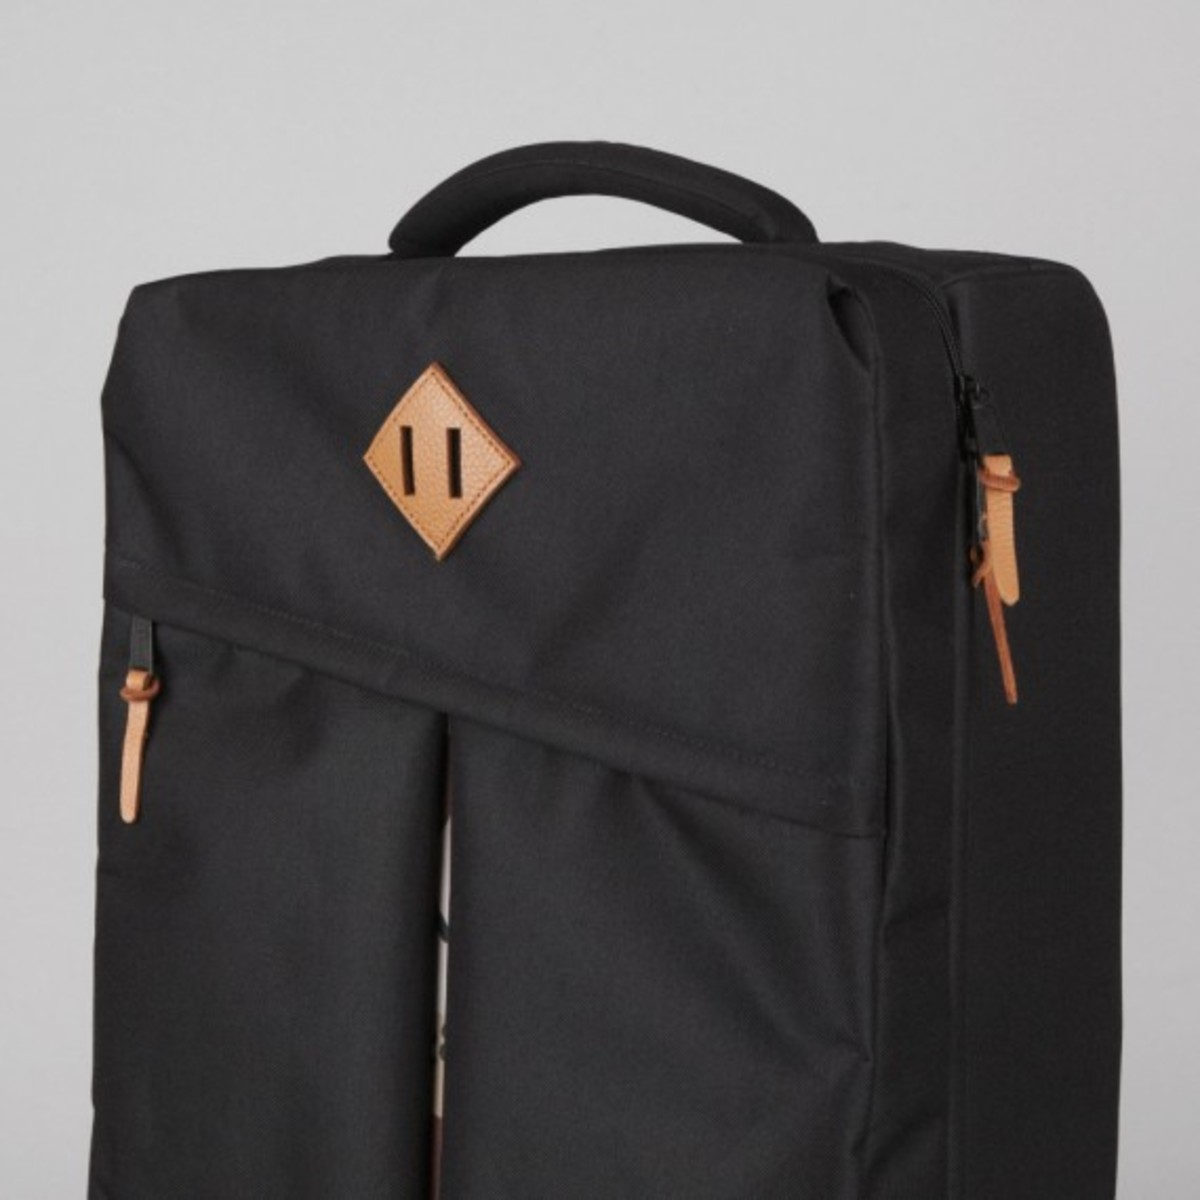 herschel-supply-co-luggage-collection-11